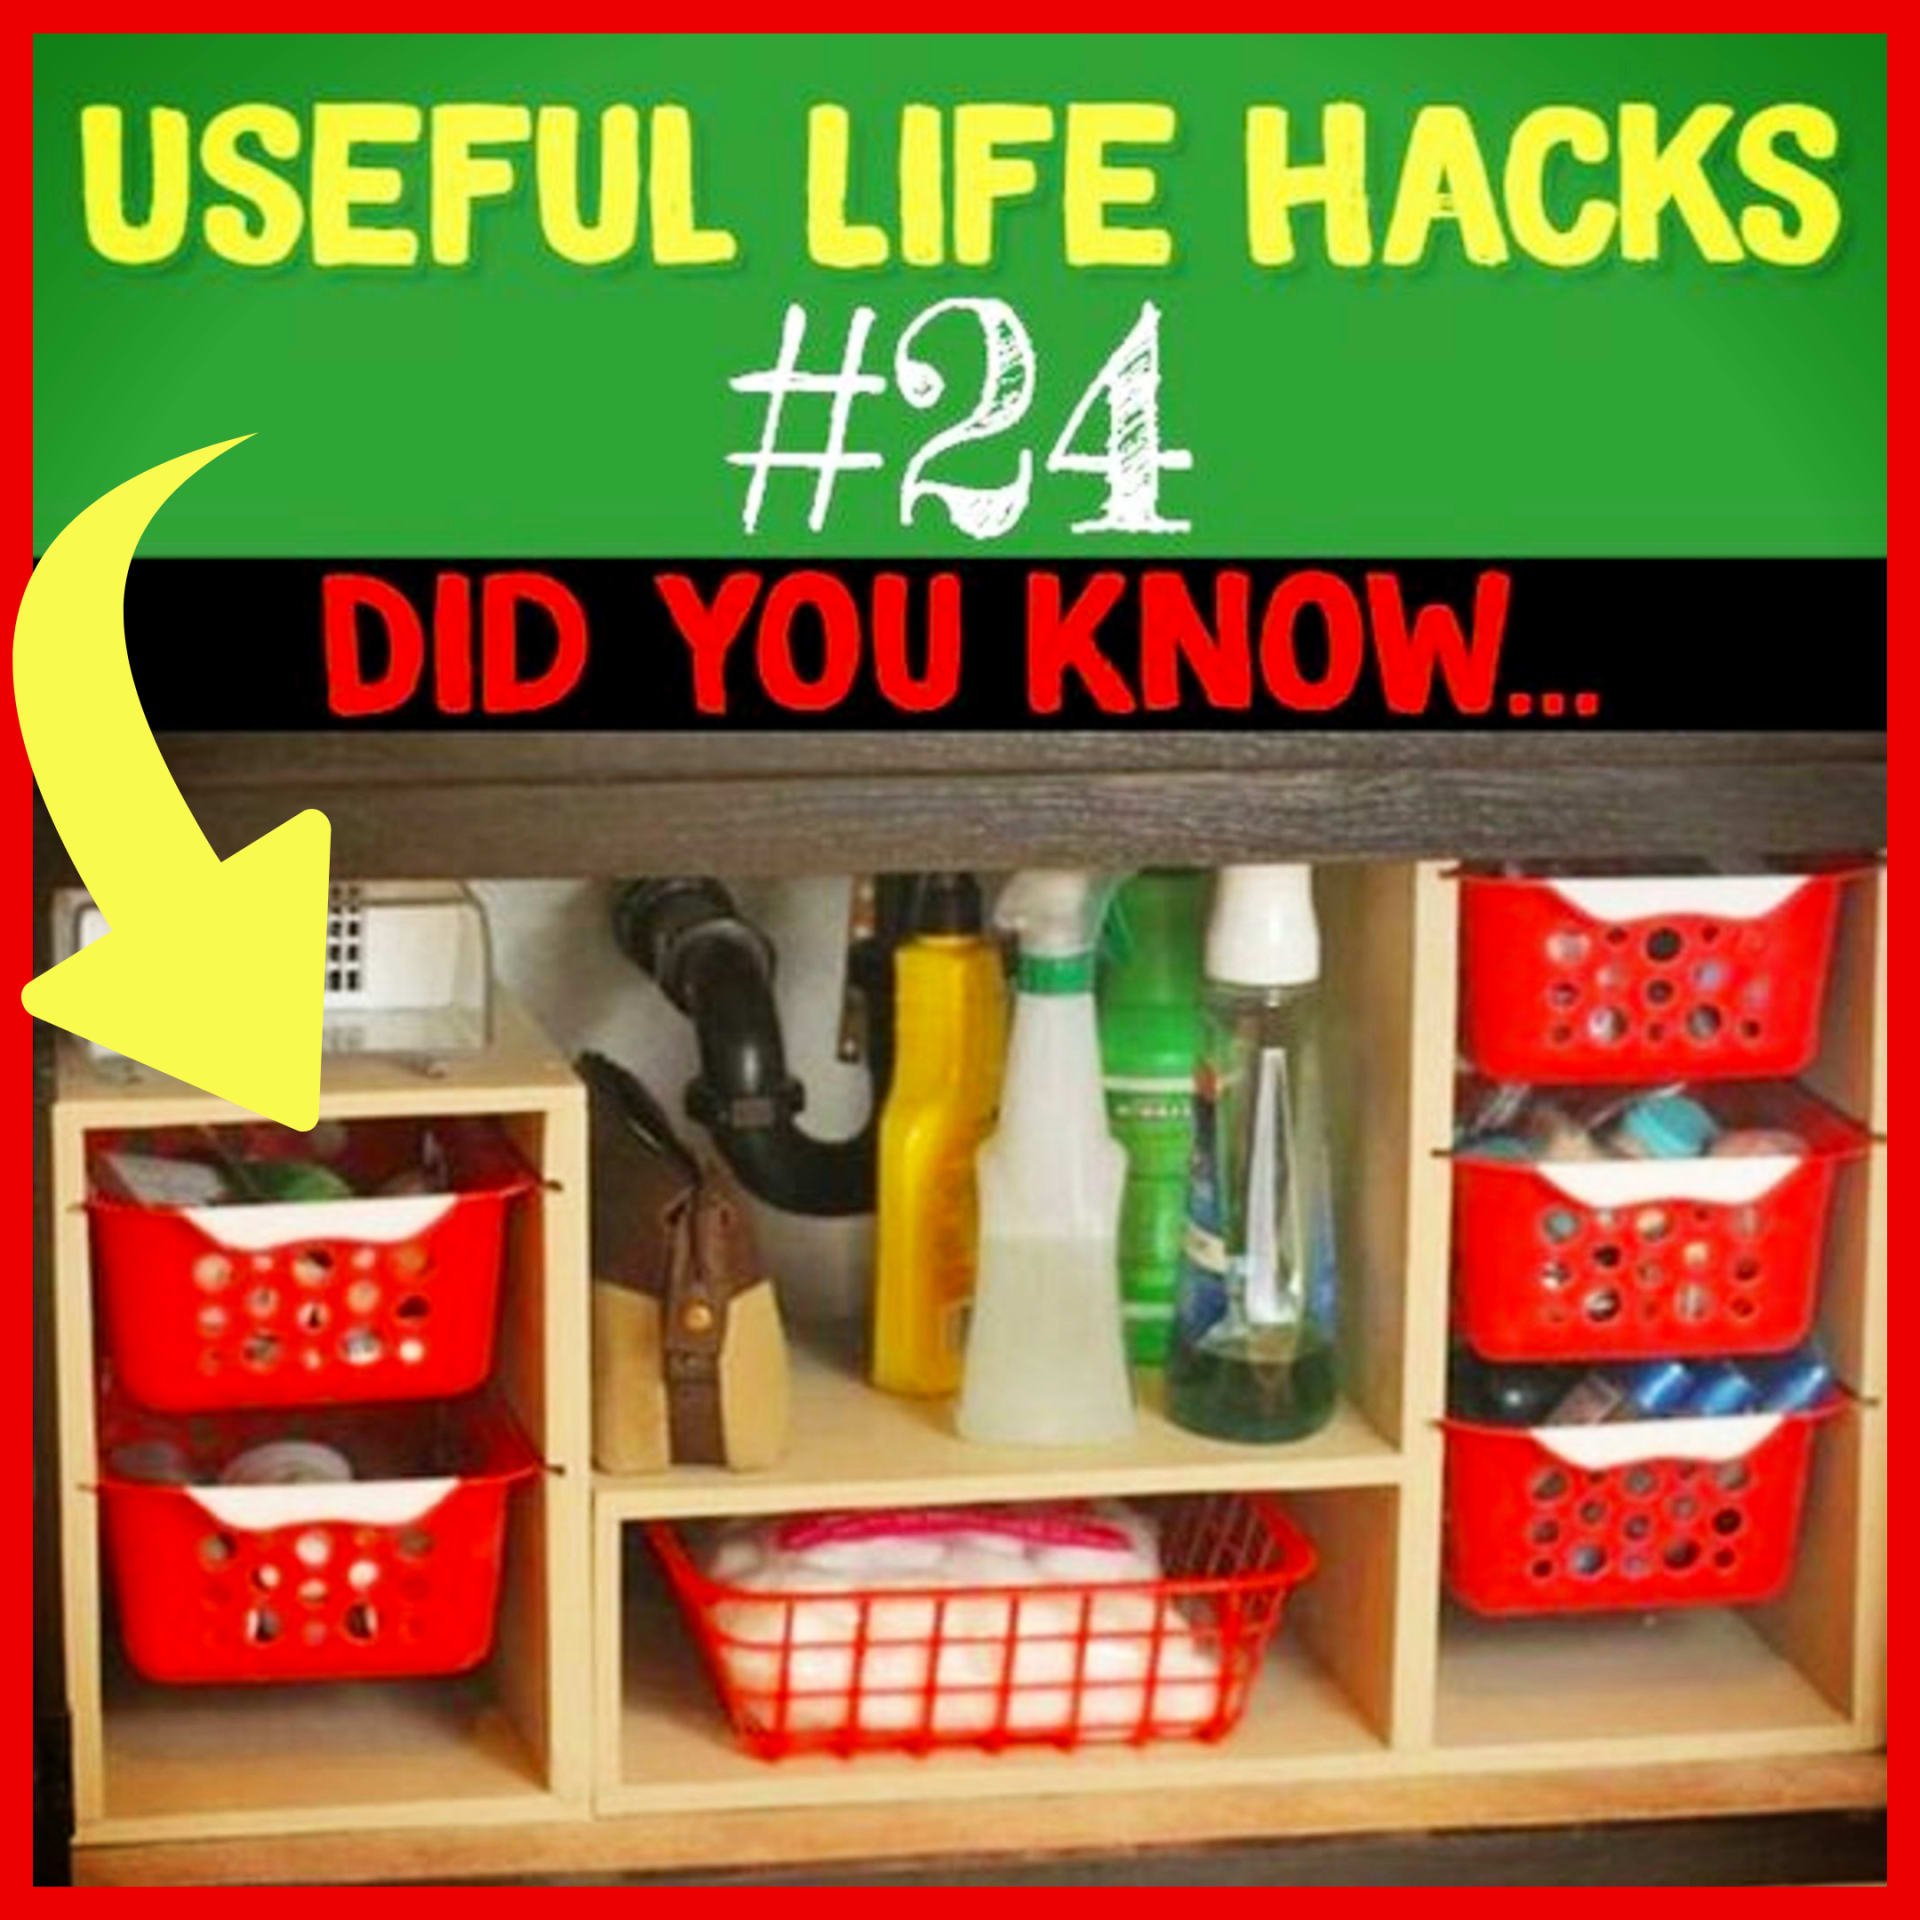 Under sink organization and under kitchen sink storage DIY dollar tree ideas - cleaning supplies organization and more Useful Life Hacks - MIND BLOWN!  Households life hacks and good to know hacks tips and lifehacks - these household hacks, cleaning tips & tricks are such helpful hints and life changing lifehacks